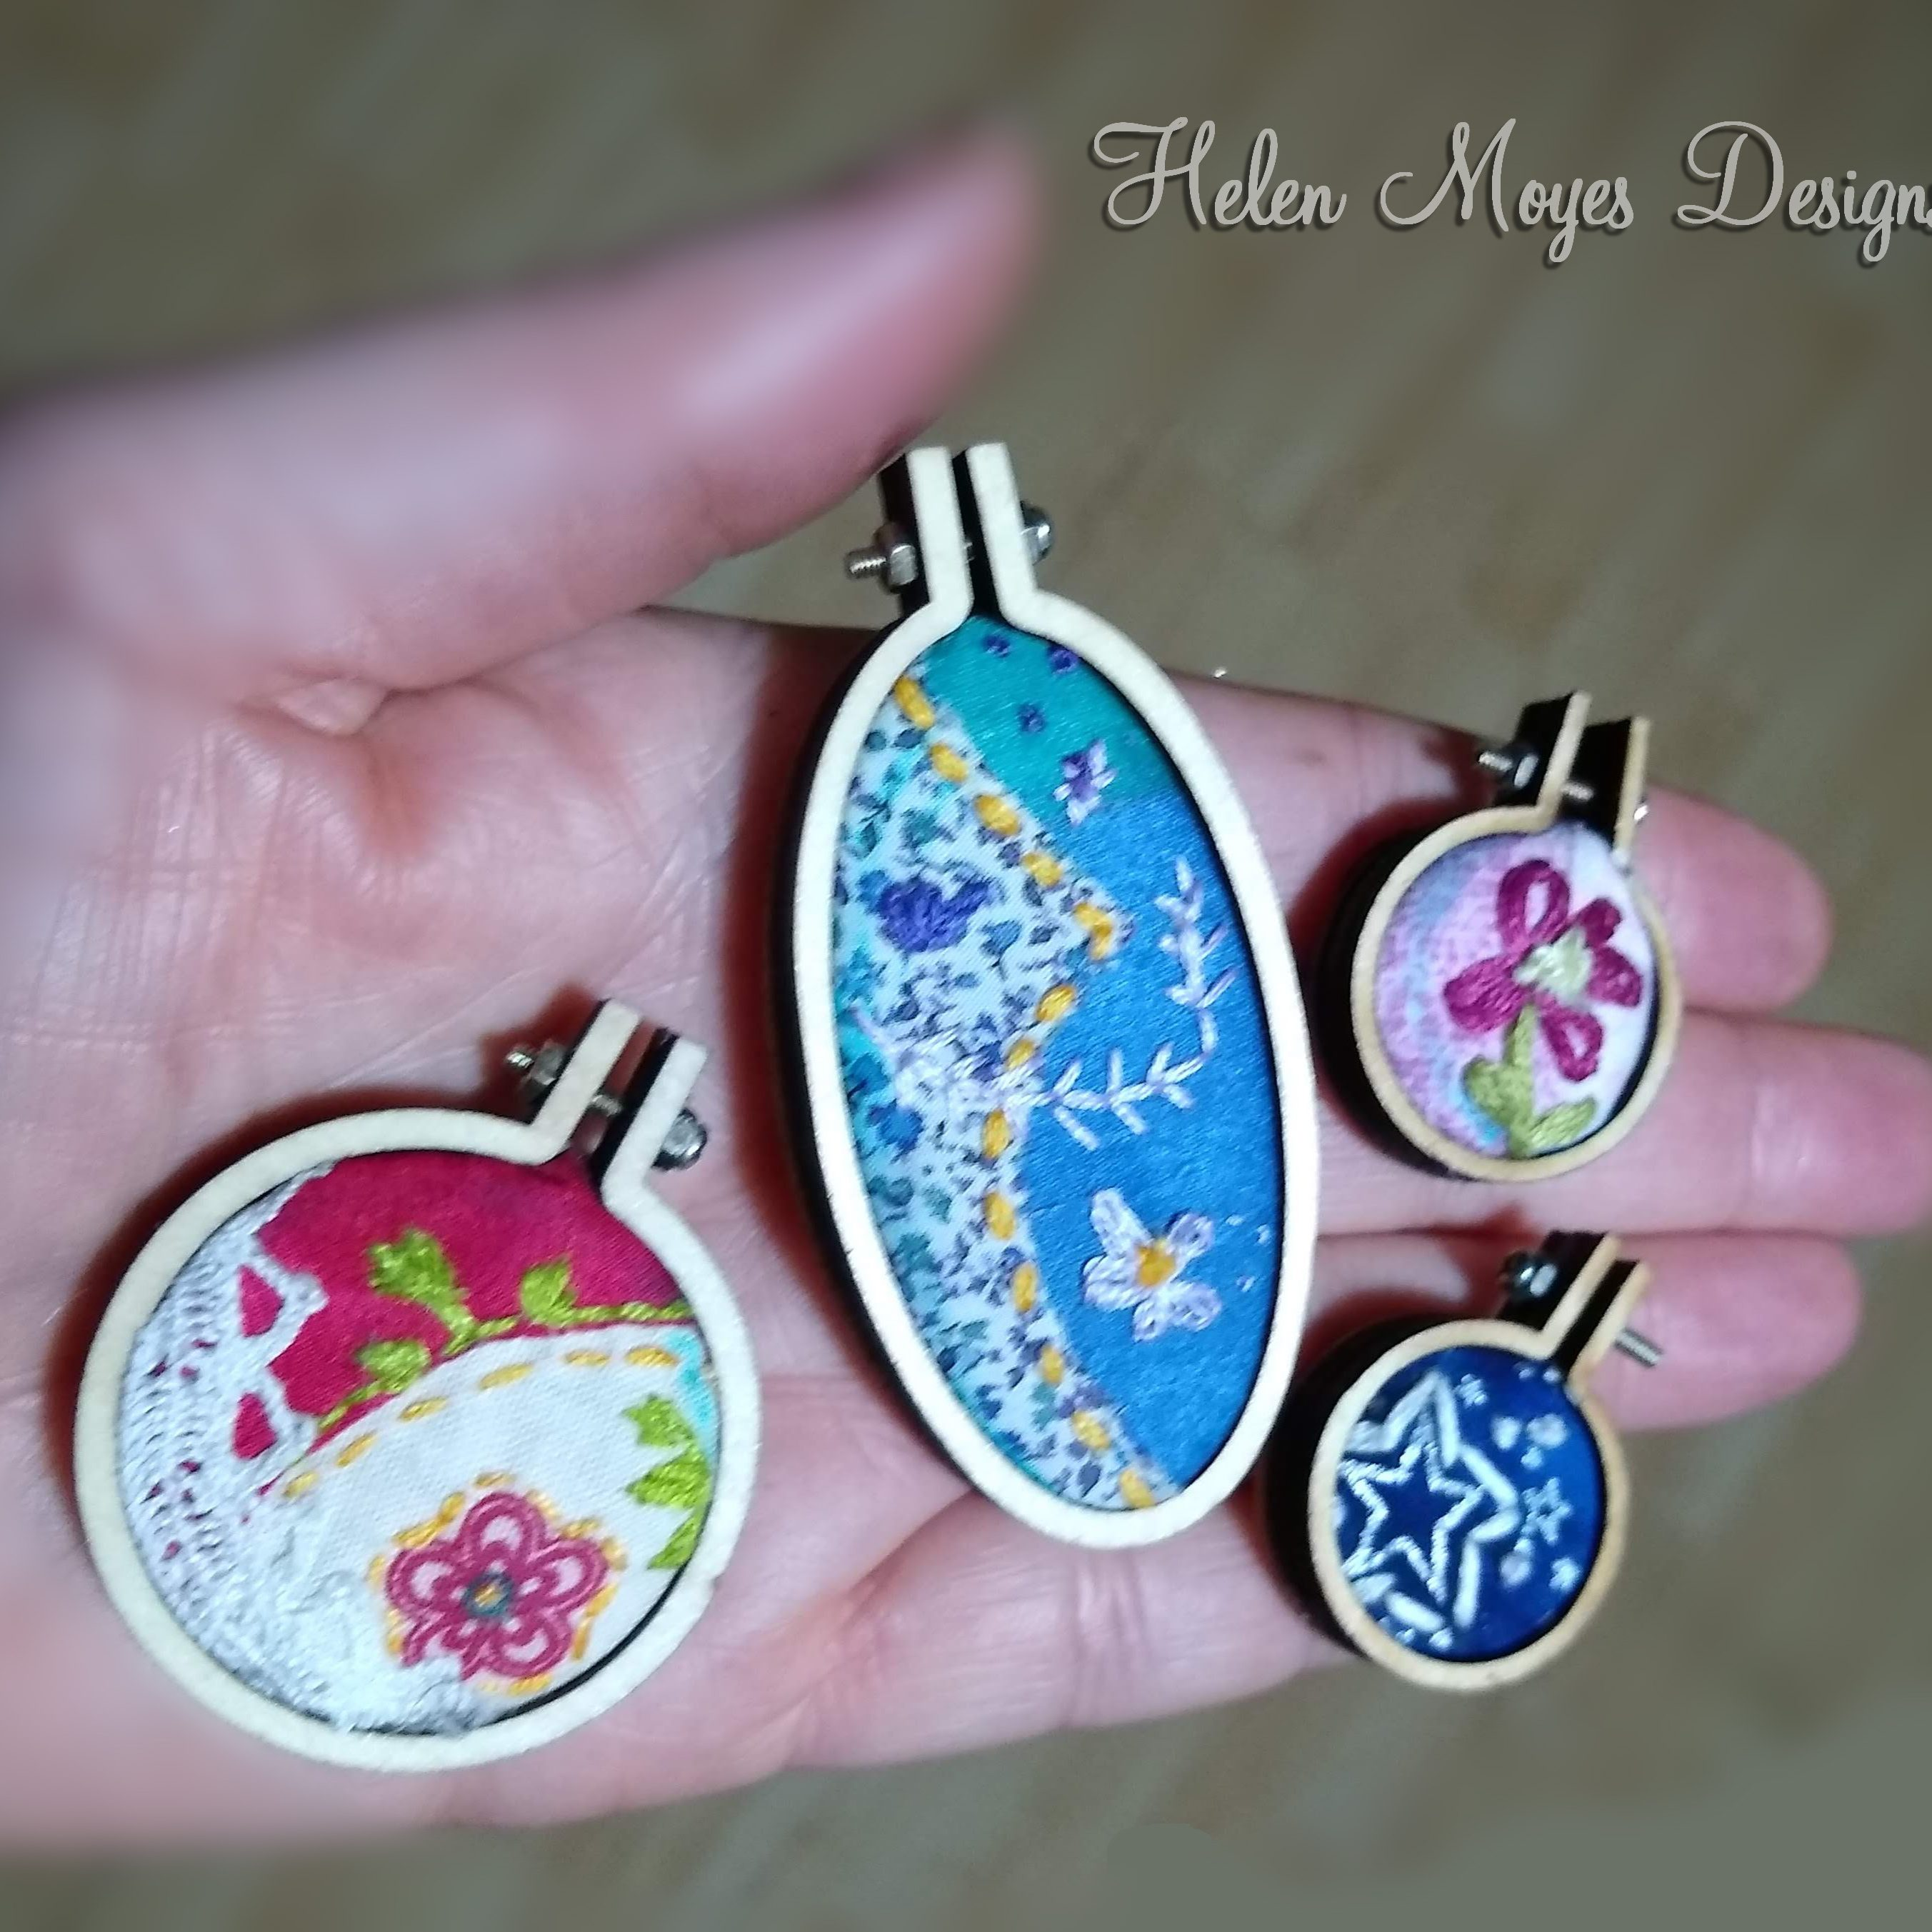 Helen Moyes Designs Tiny Stitches in Mini Hoops